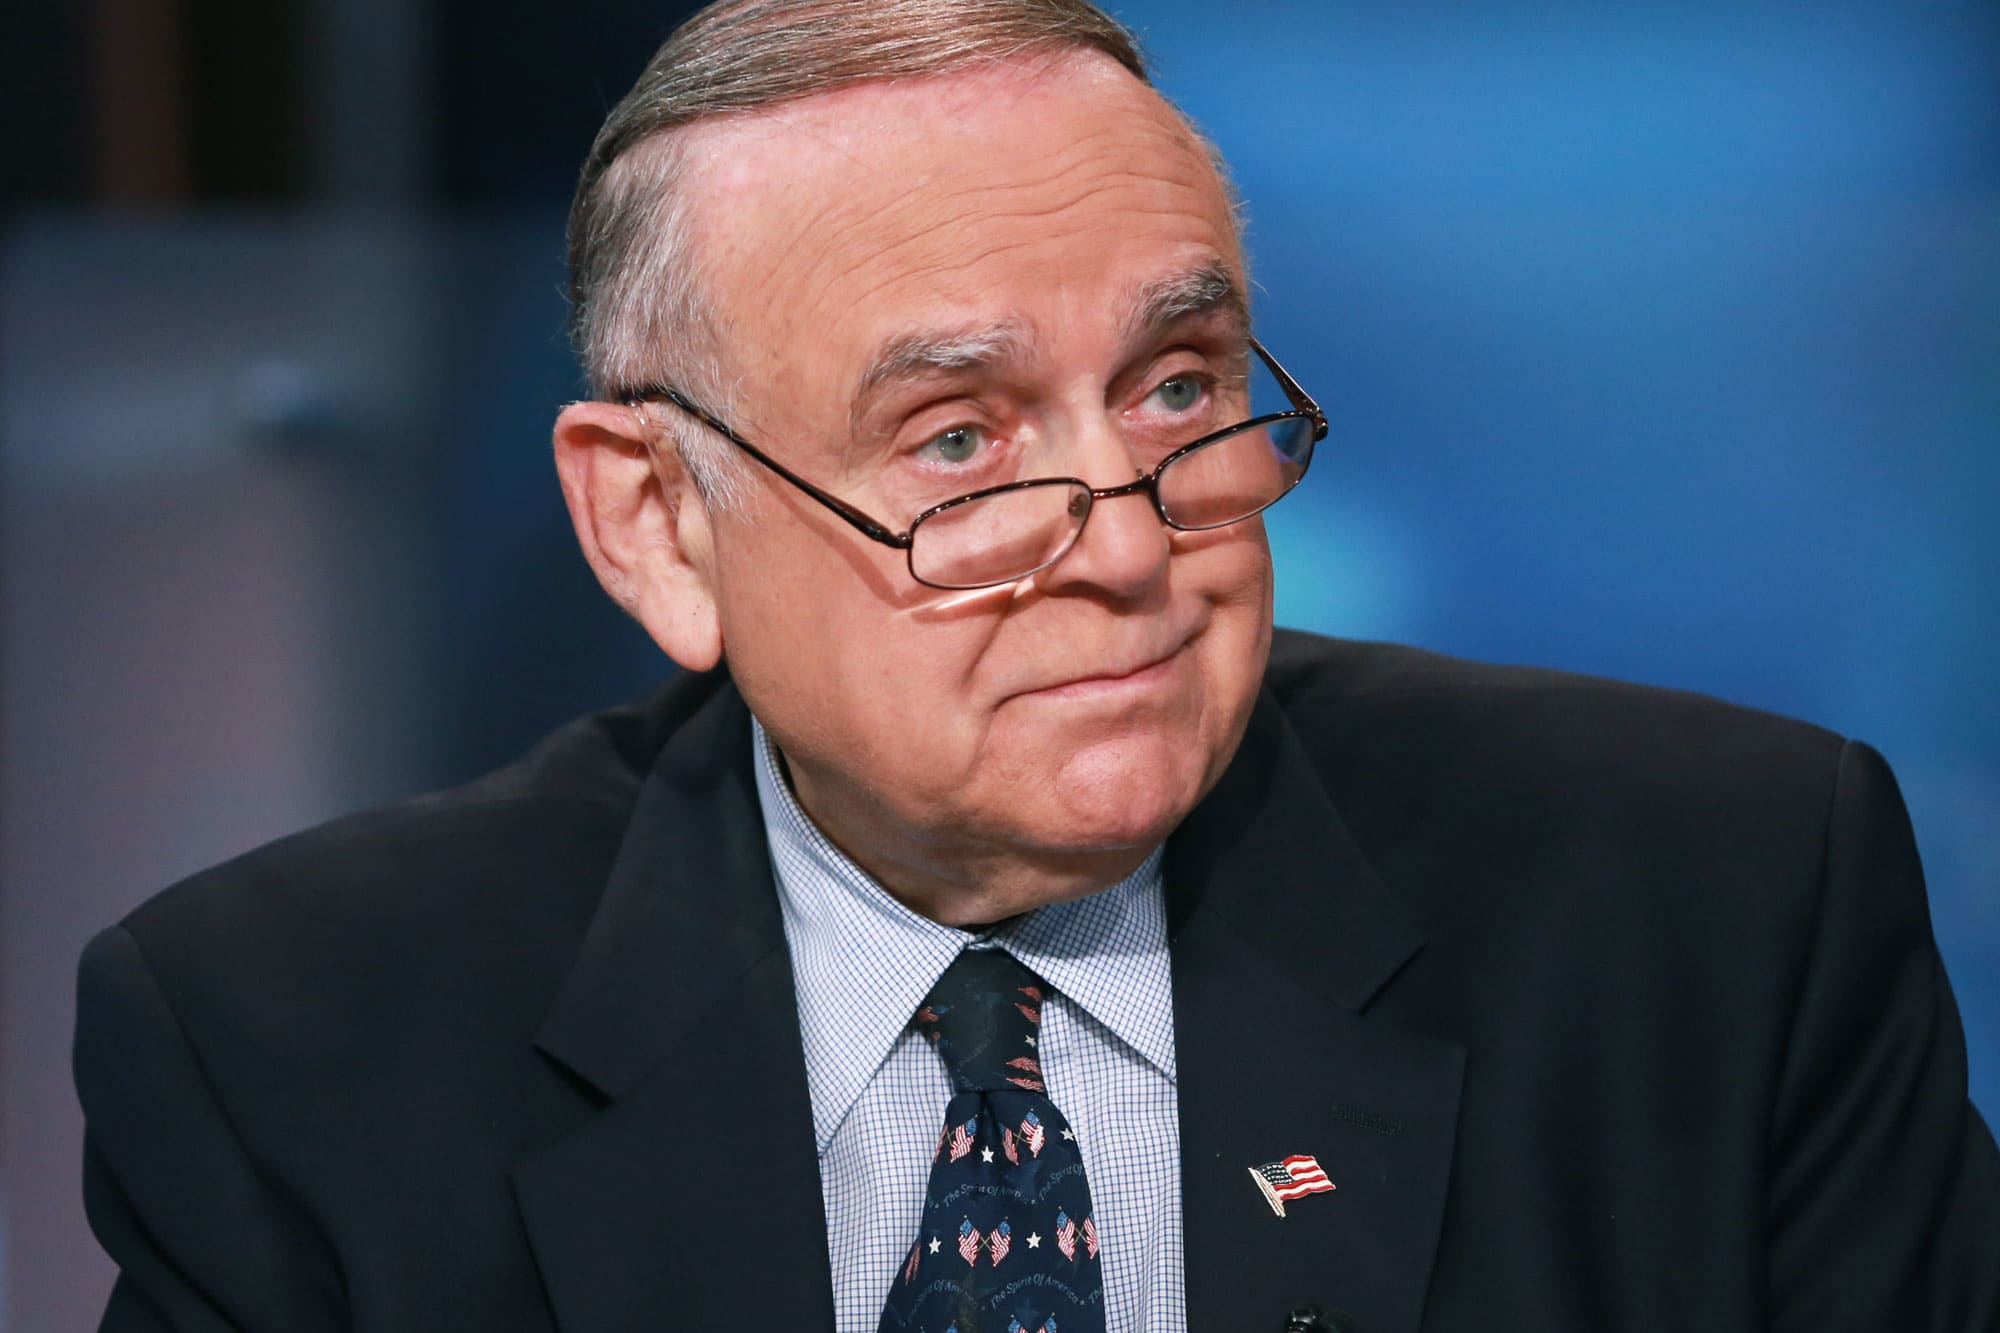 A former Omega employee defends Leon Cooperman against Elizabeth Warren: 'She has dehumanized an admirable human being'